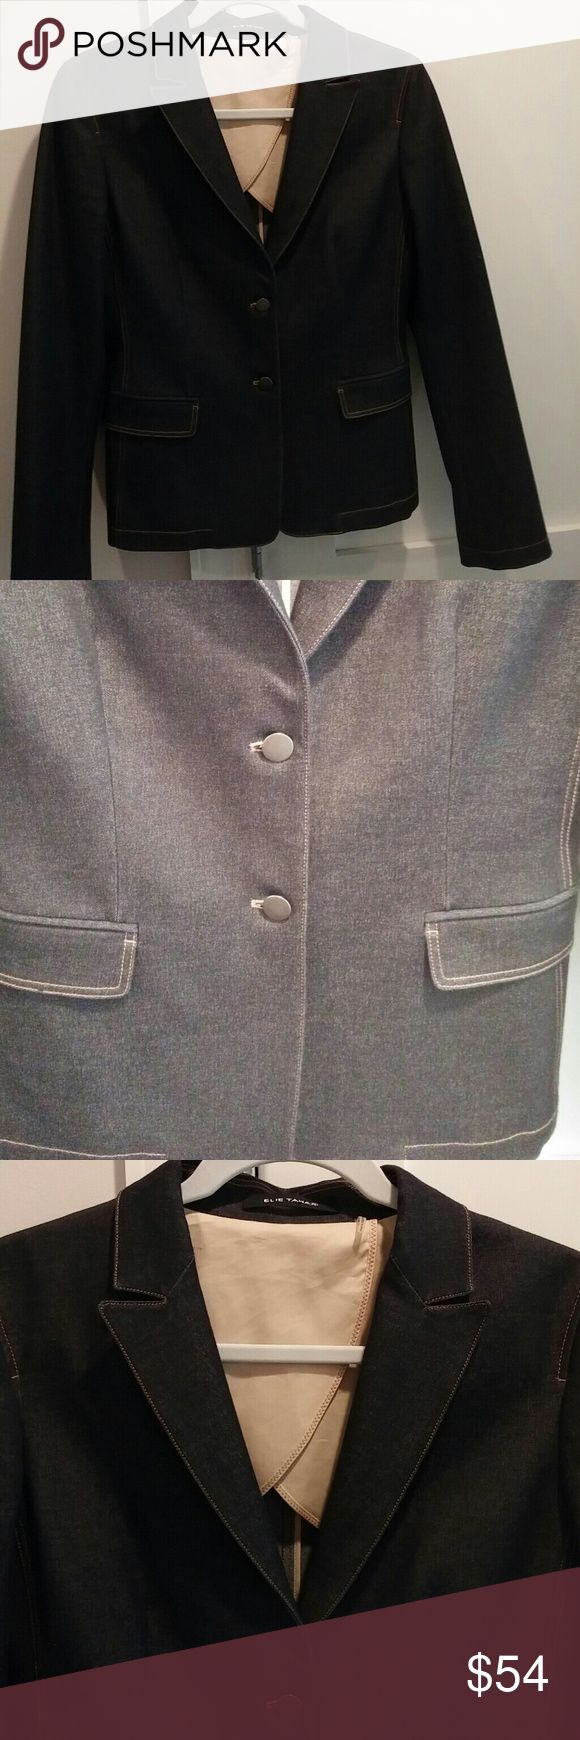 Elie Tahari fitted jean jacket Gorgeous Elie Tahari fitted jean jacket with a suit jacket Style. Dark blue with caramel color stitching. Excellent jacket for fall and business casual. Excellent condition. Elie Tahari Jackets & Coats Blazers